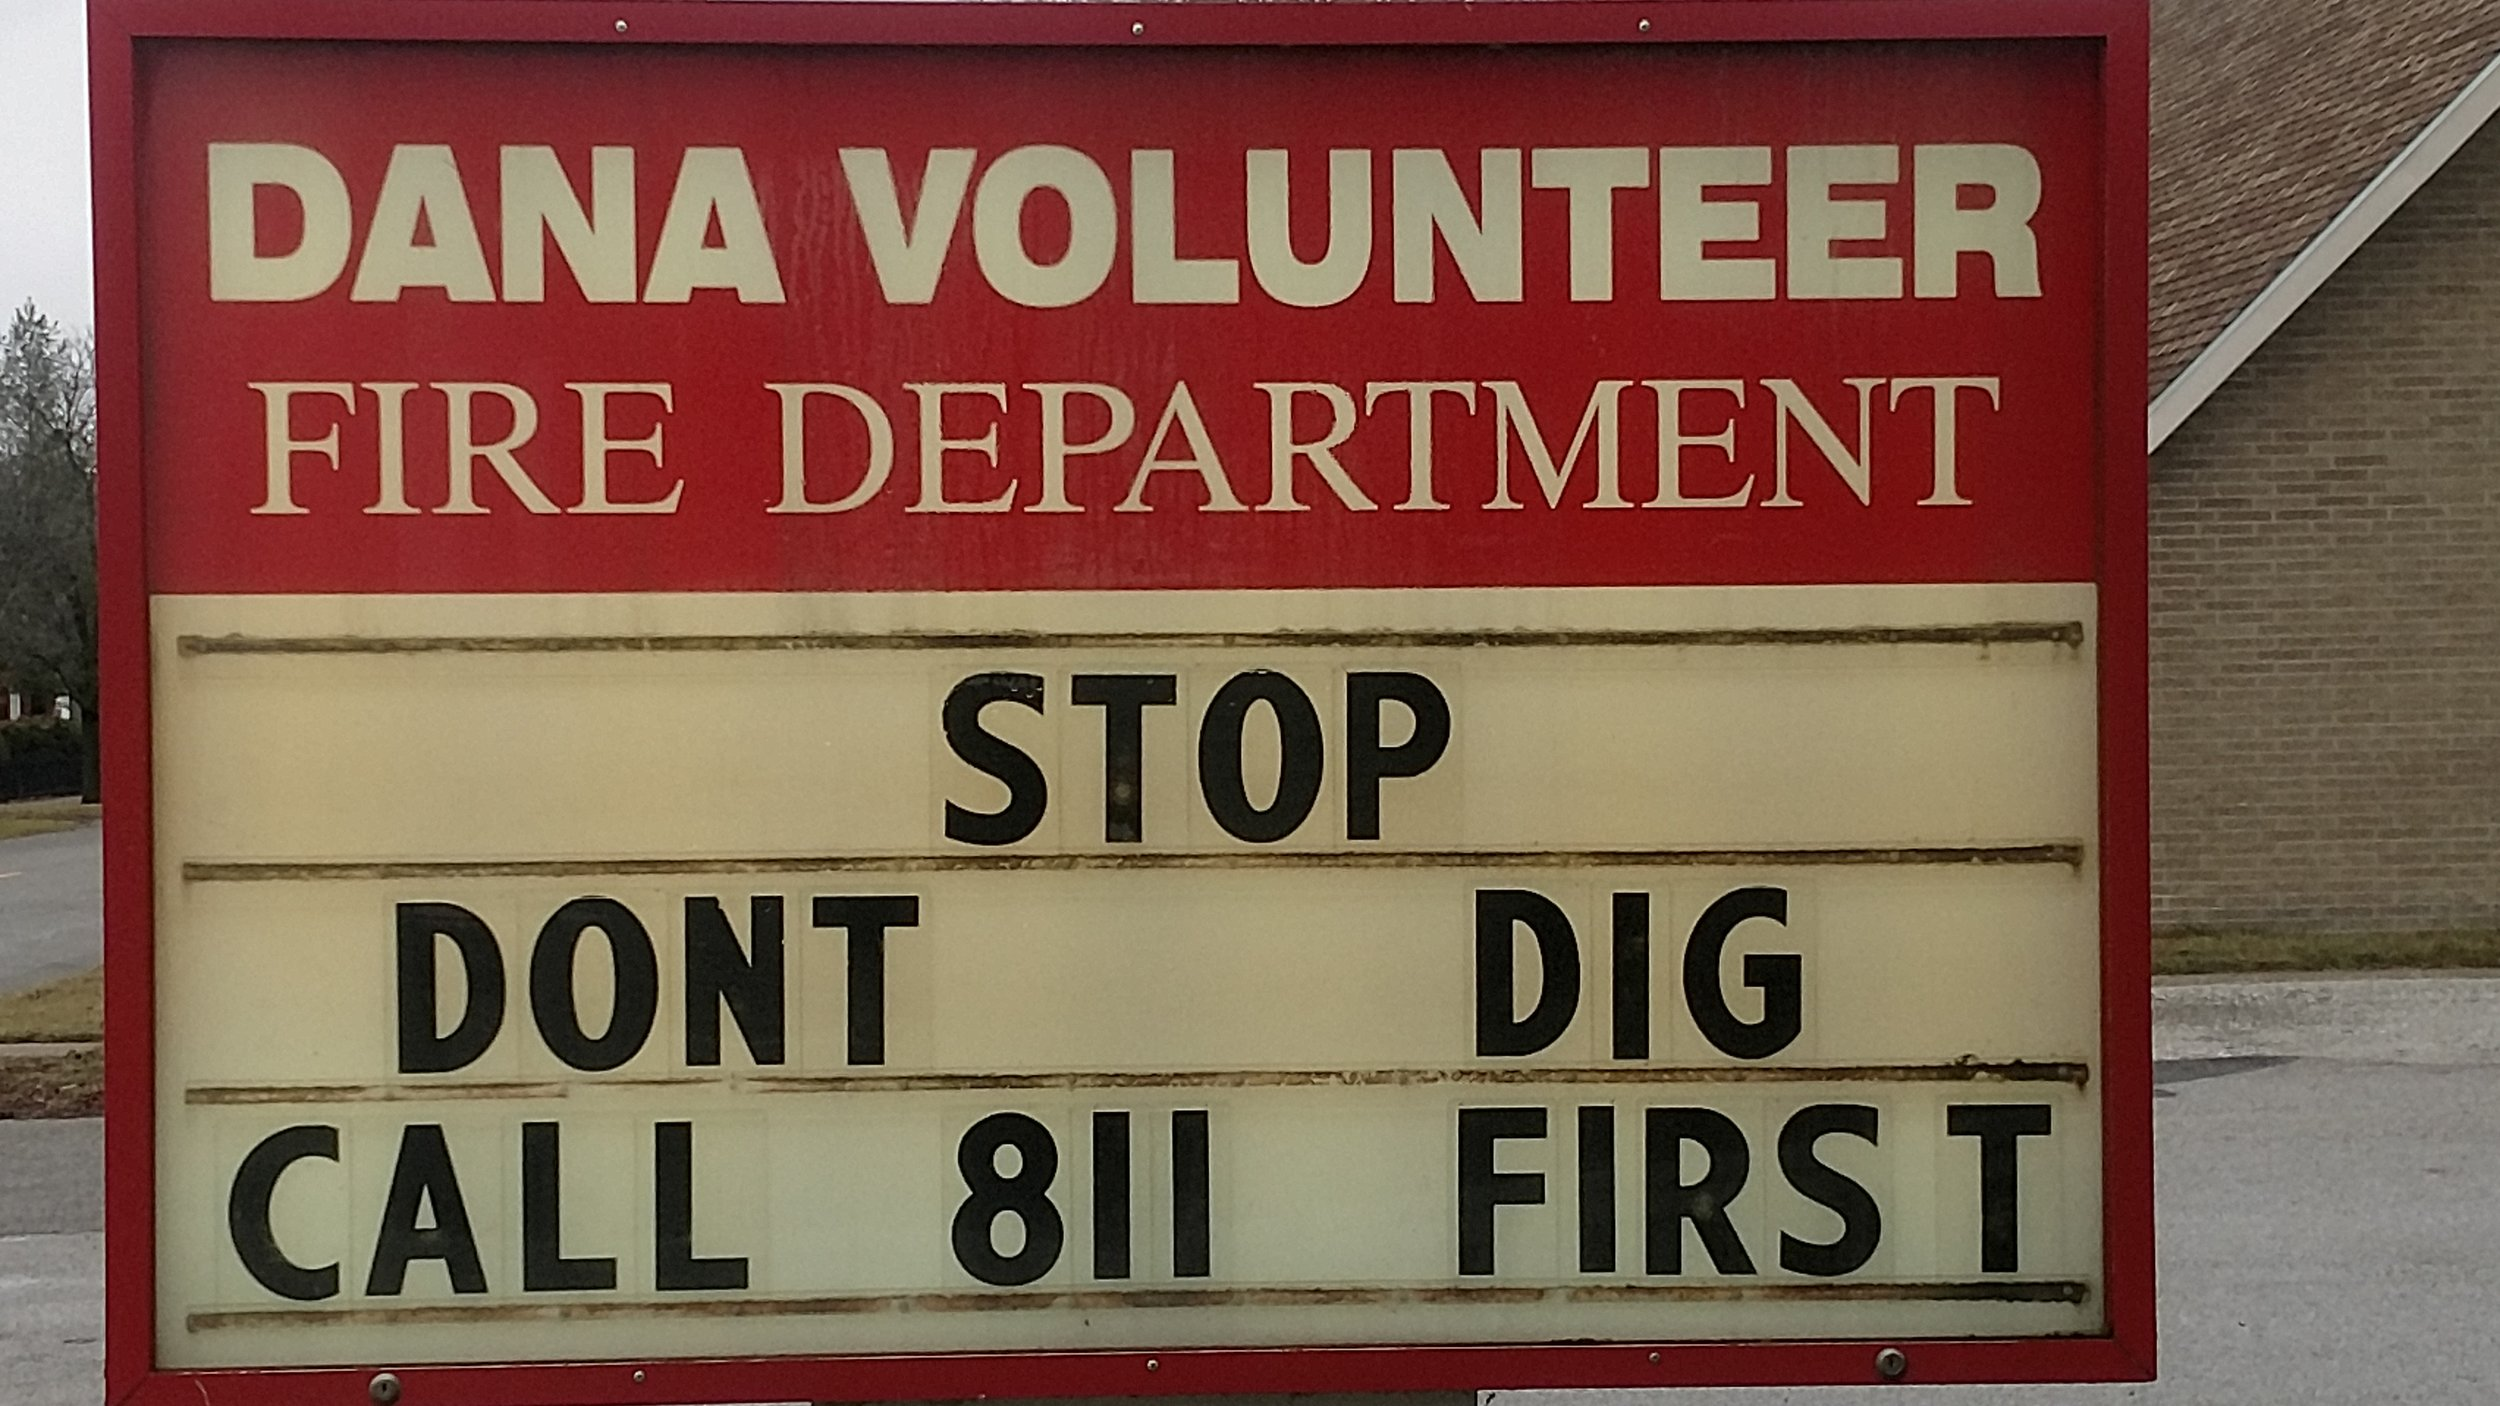 Dana Volunteer Fire Department